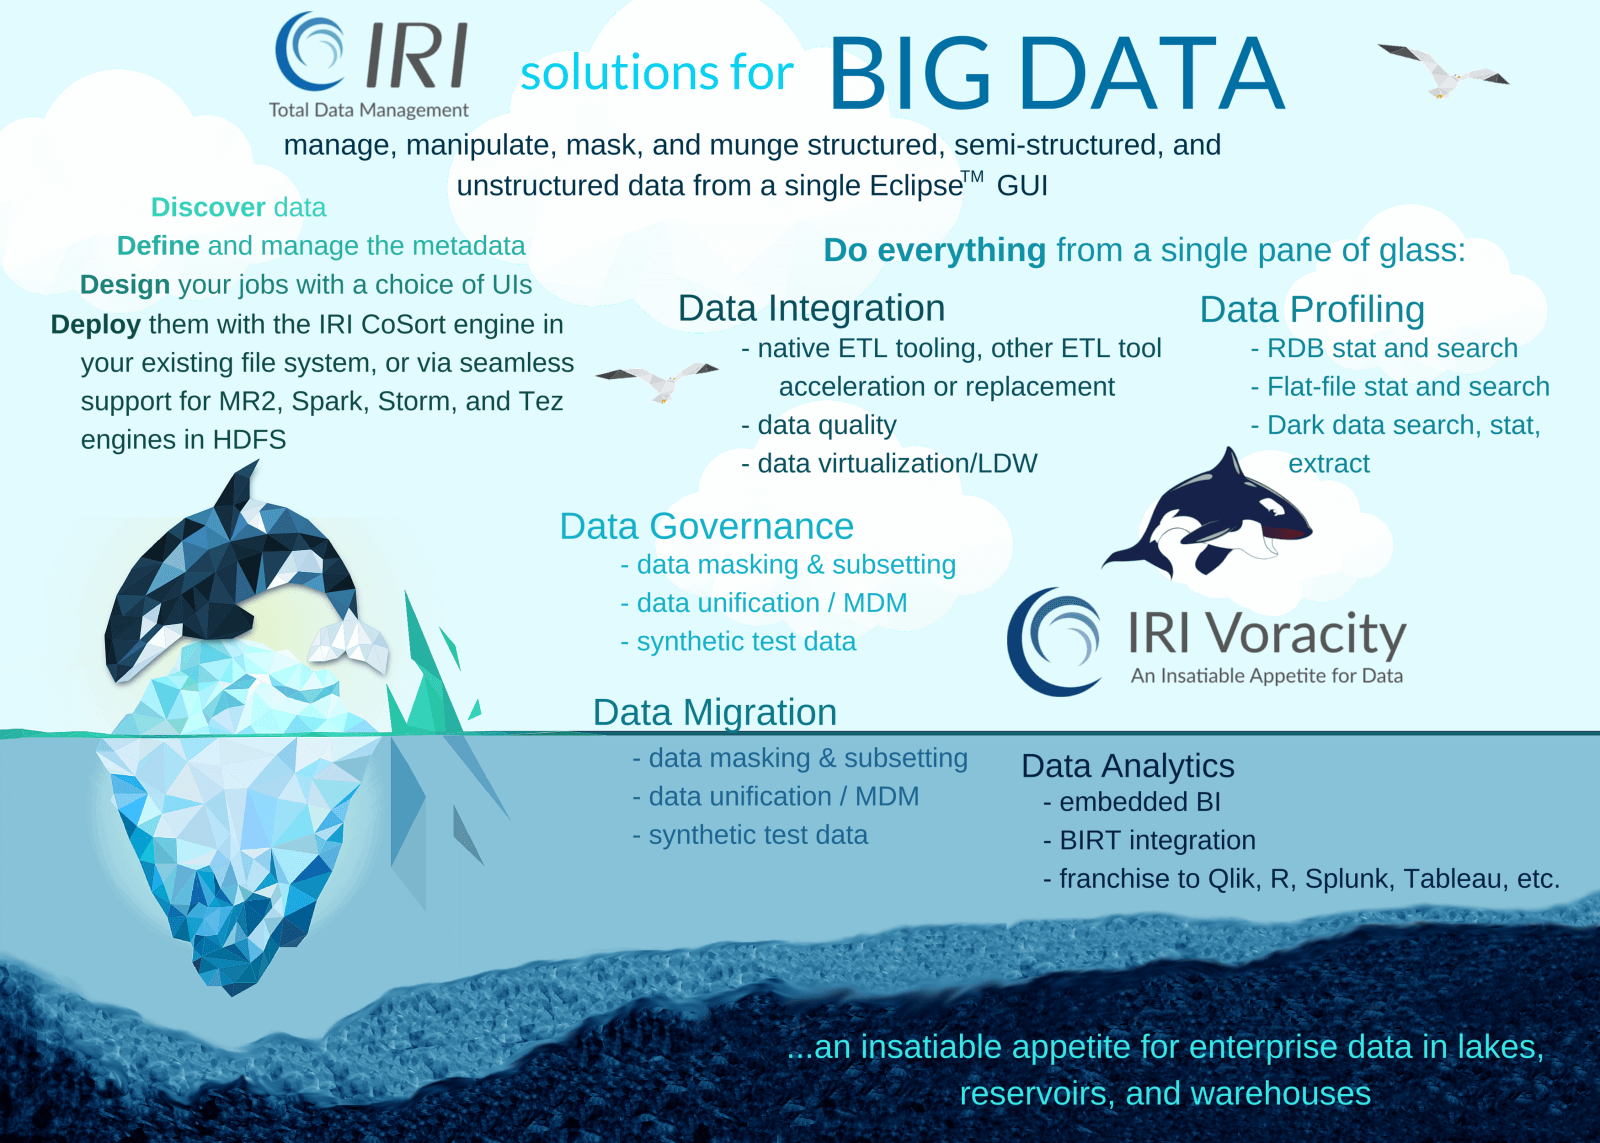 IRI big data solutions